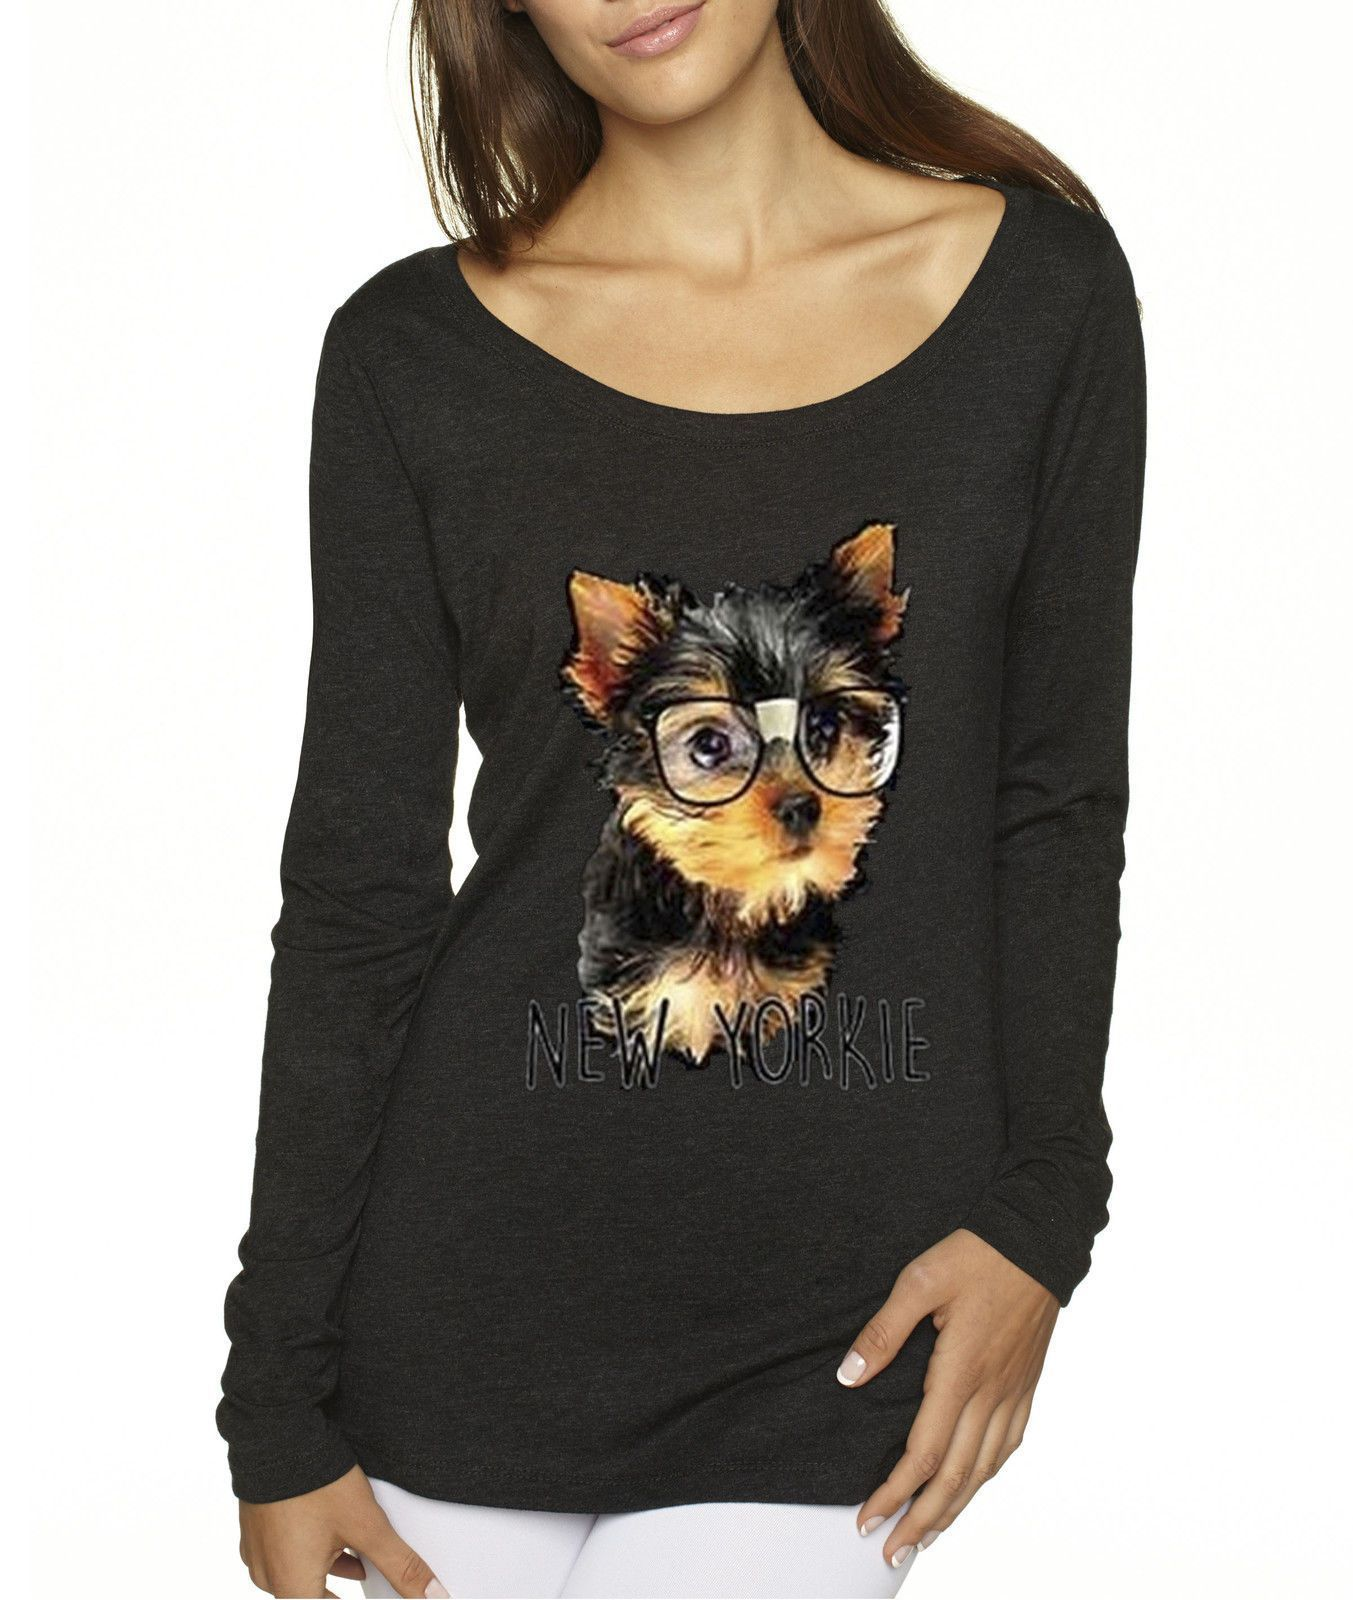 Way 381 - Women S Long-Sleeve York Yorkie Puppy Dog Glasses Funny Humor   funnyyorkpuppy a21a786951